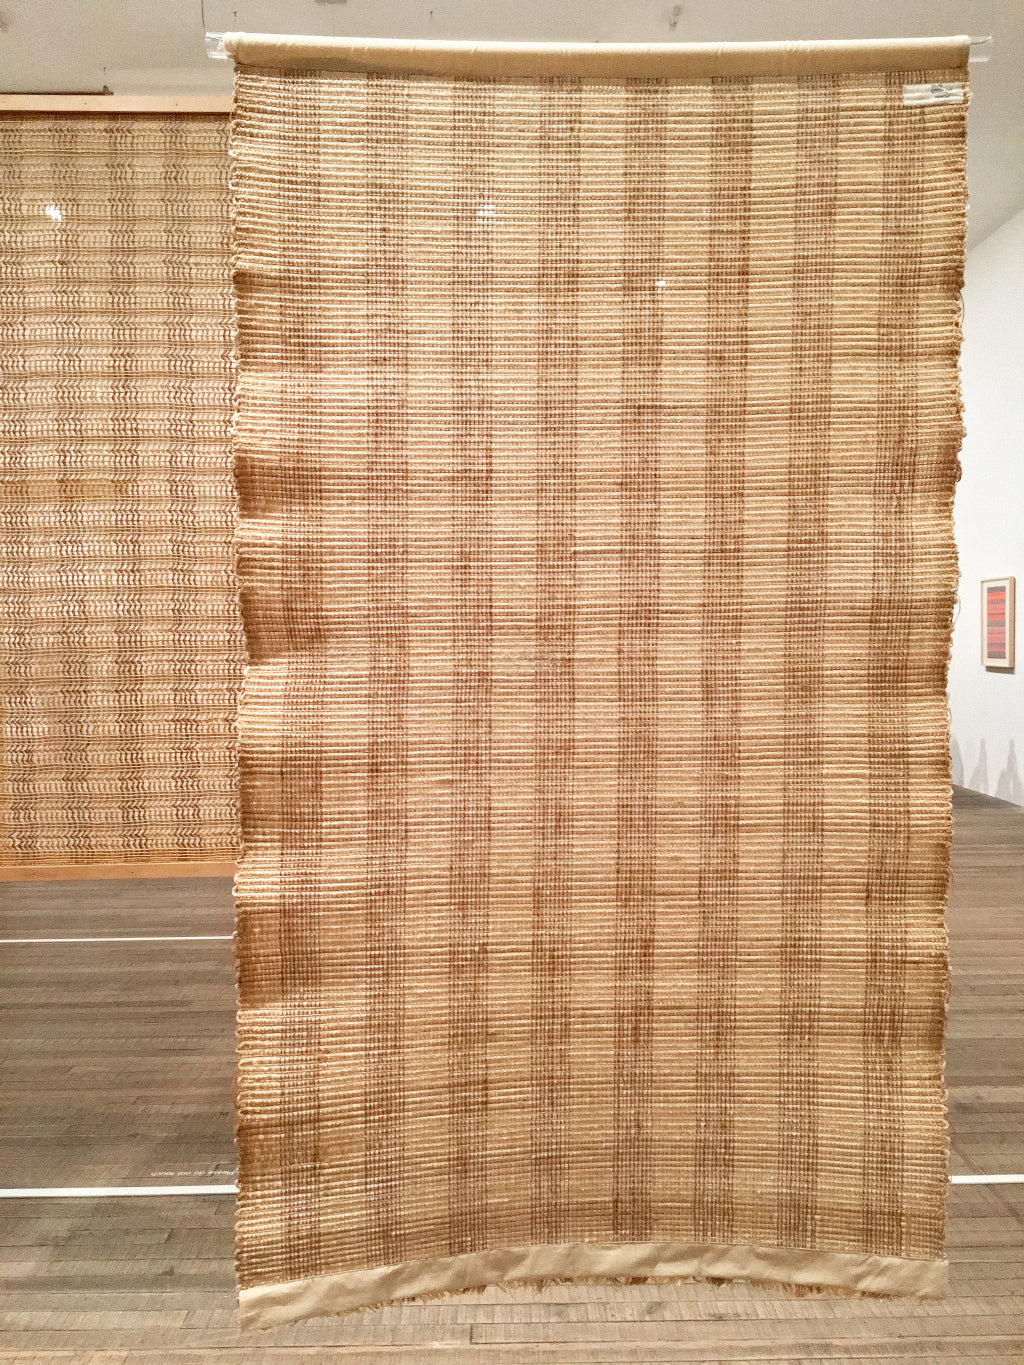 Anni Albers at Tate | wall hangings, room dividers